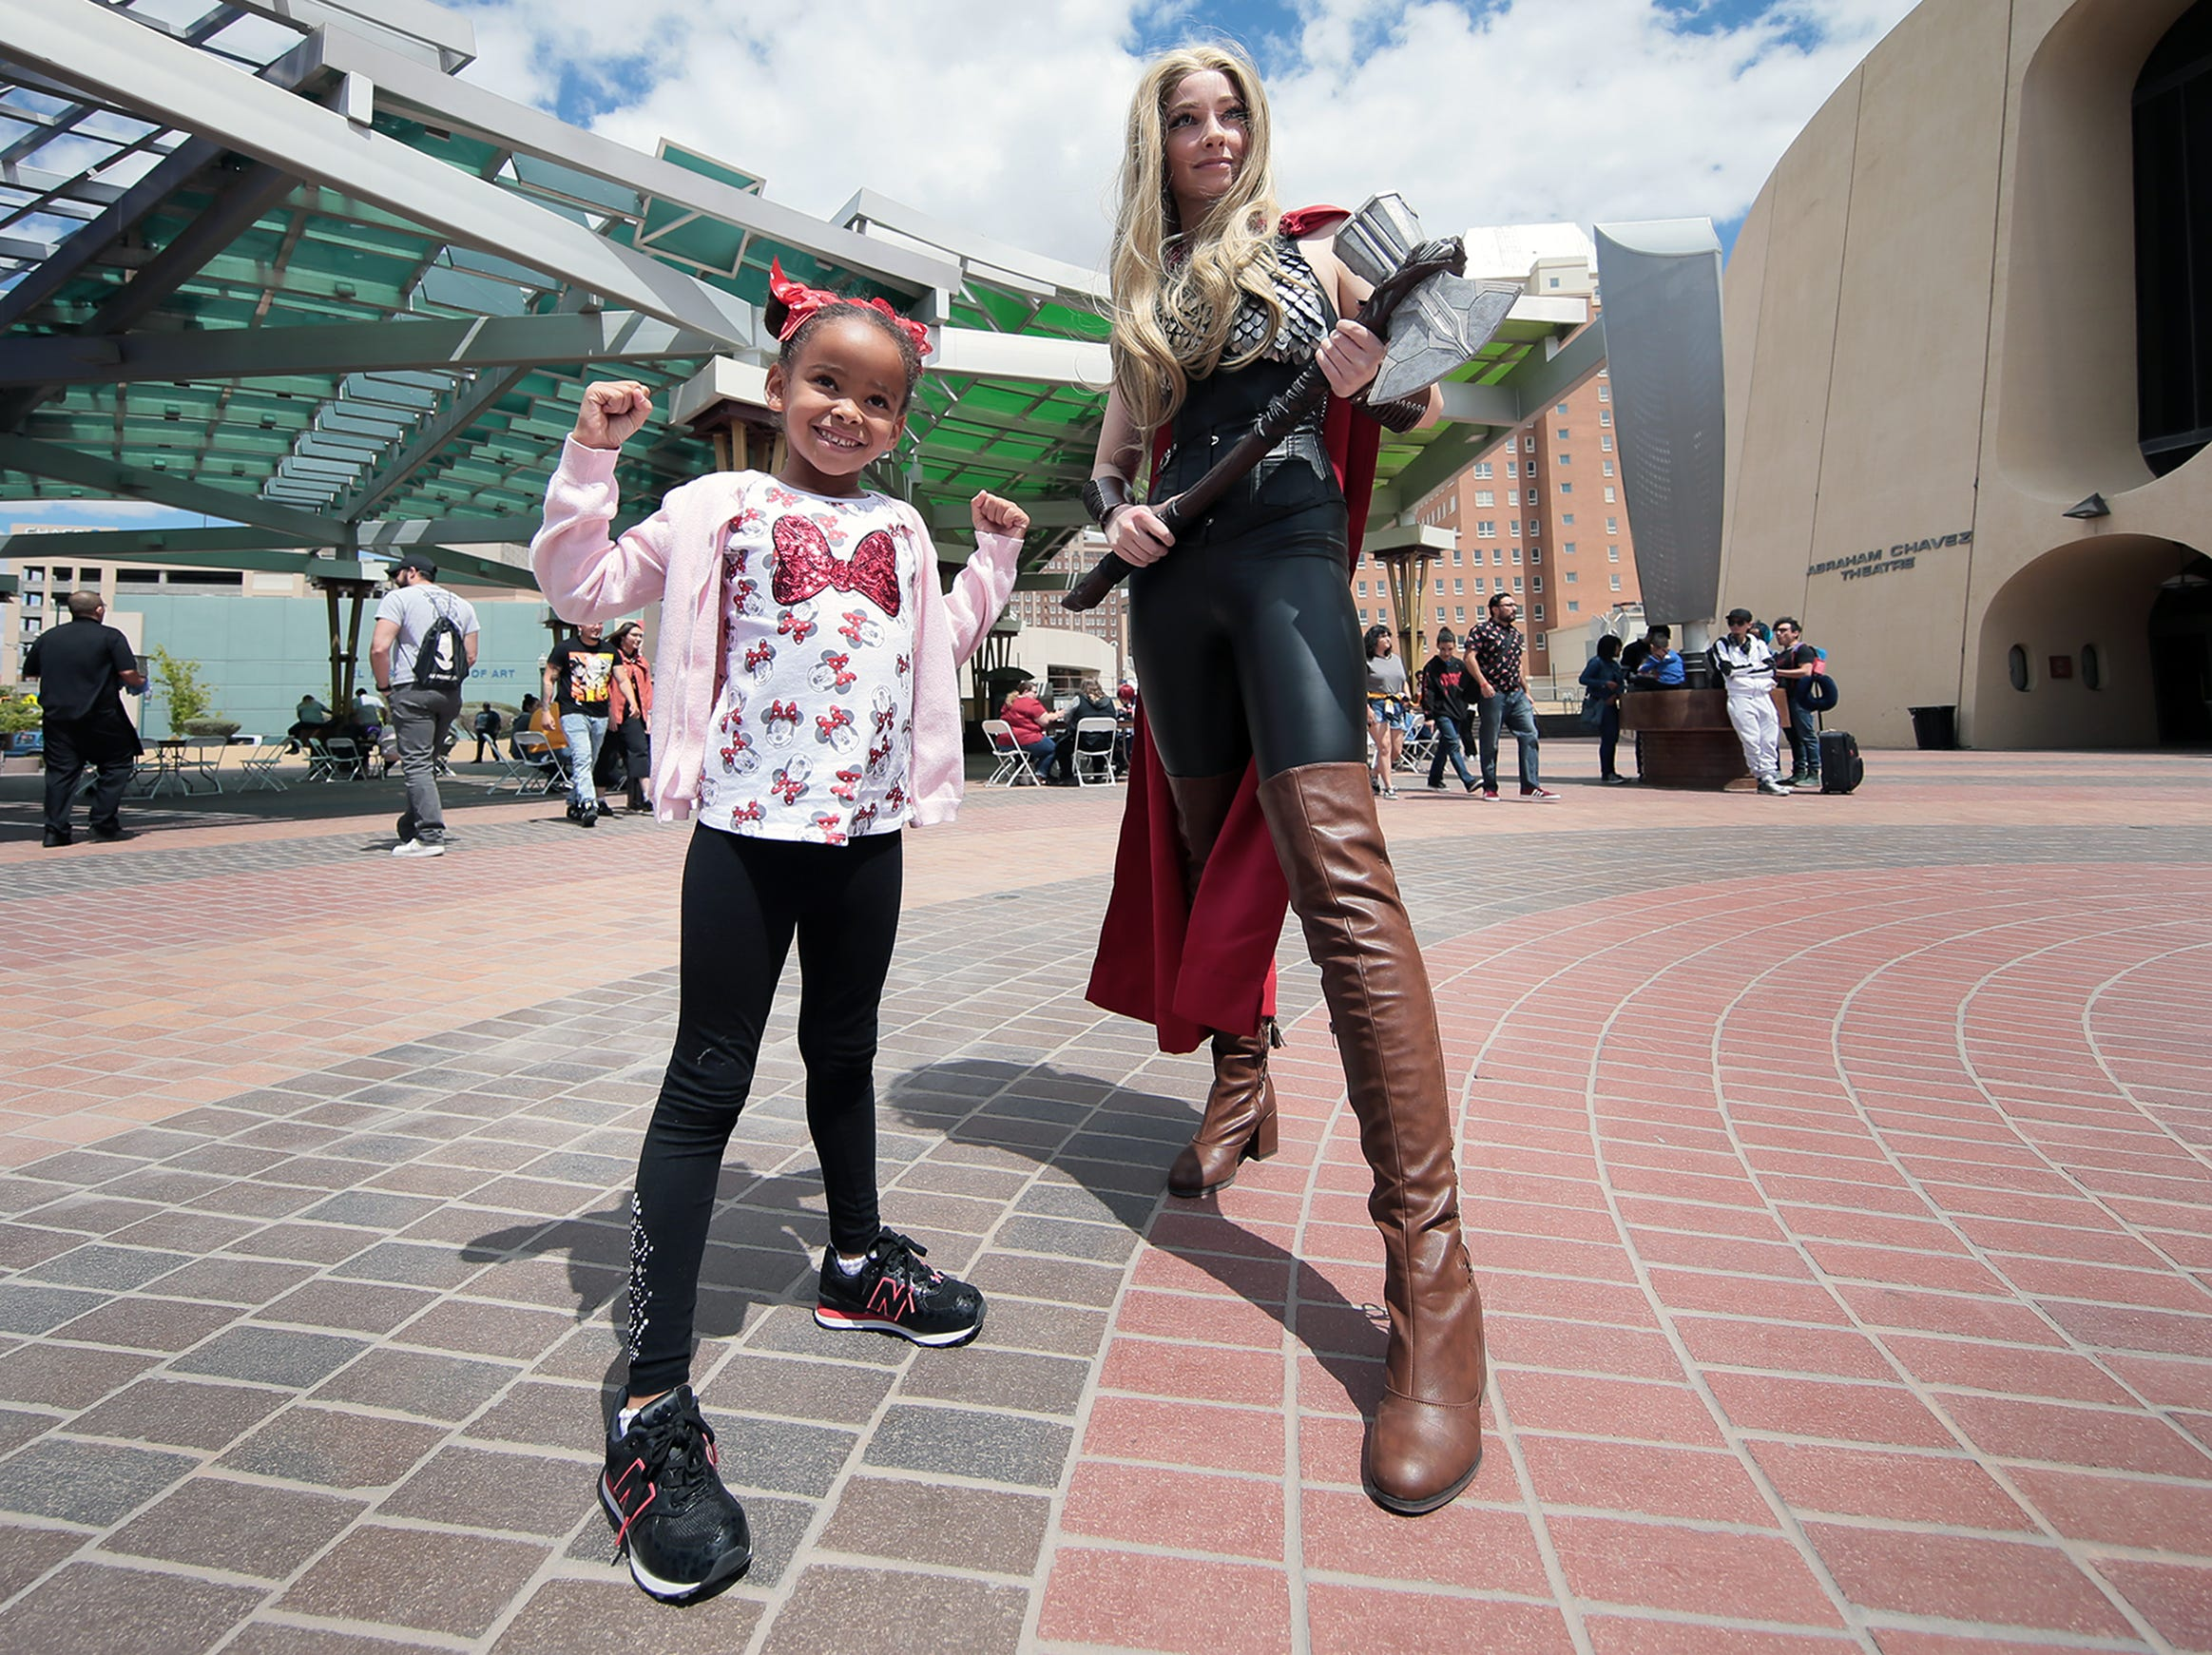 A young fan flexes as she takes a photo with Kosmic Kenna outside the El Paso convention center on Saturday, April 13, 2019. El Paso Comic Con continues Sunday.